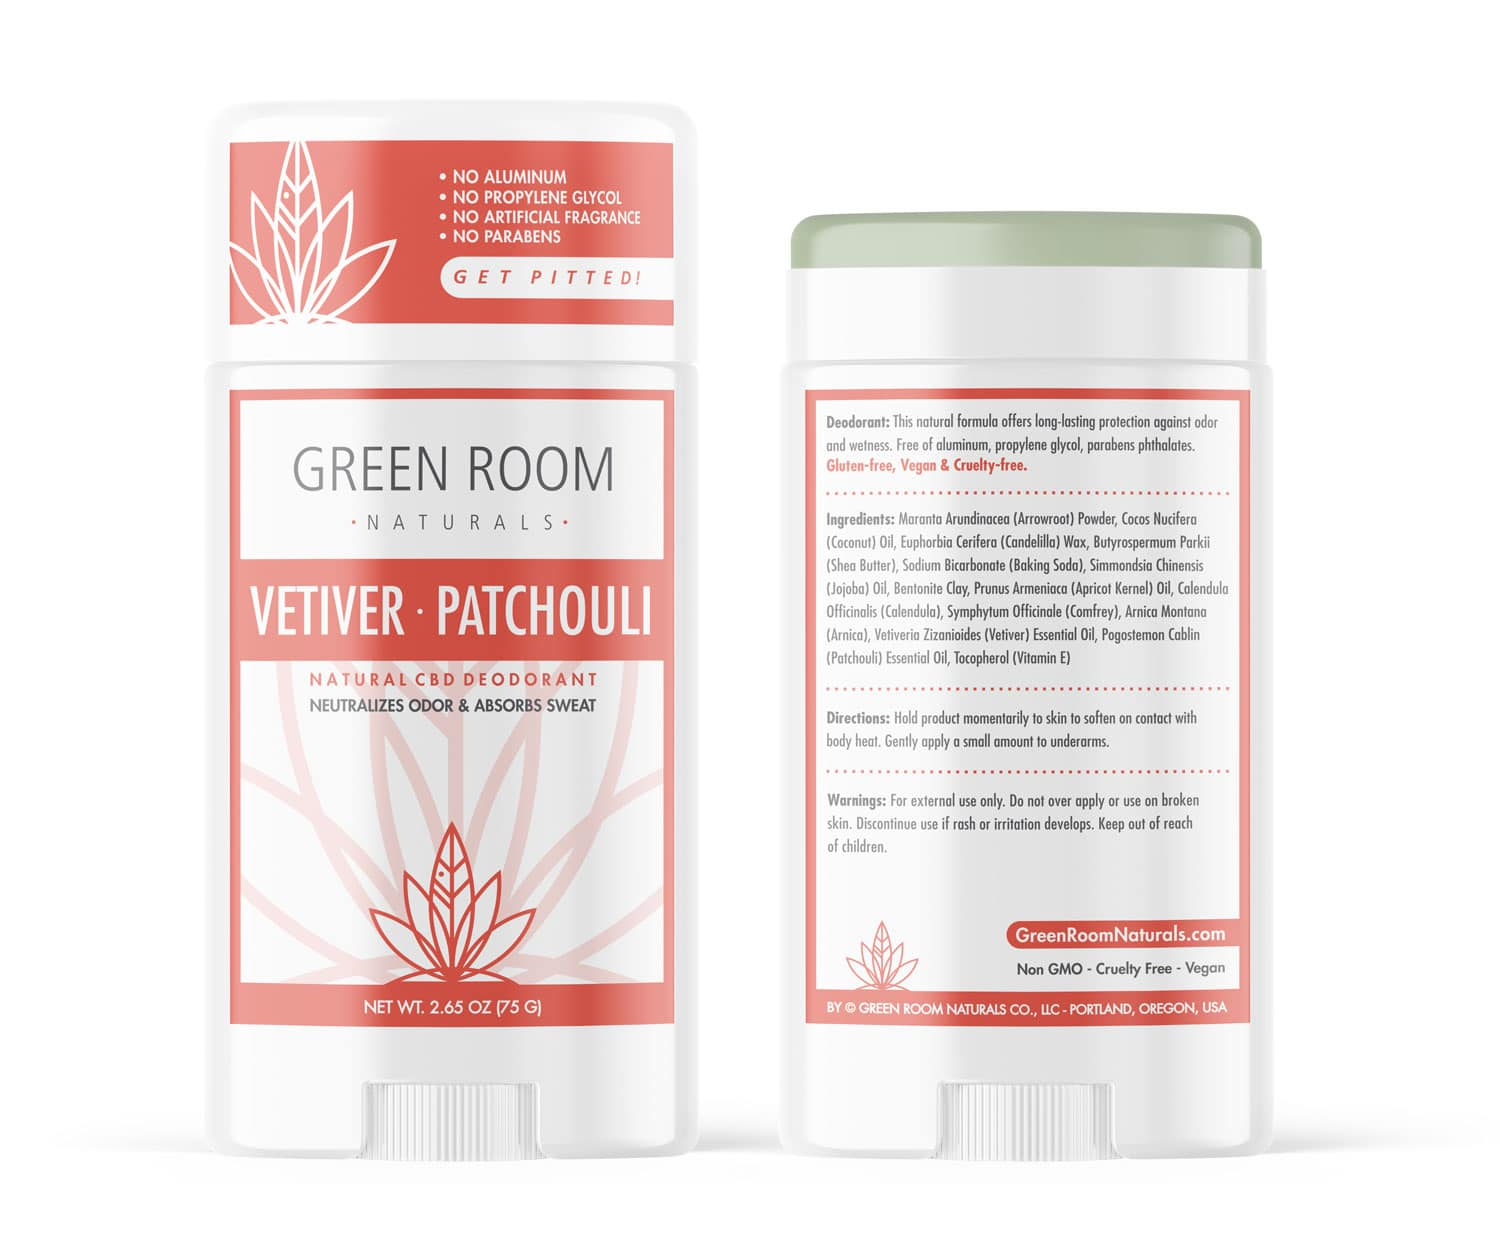 Vetiver-Patchouli Deodorant by Green Room Naturals designed by Mark Boehly-Graphicsbyte Creative